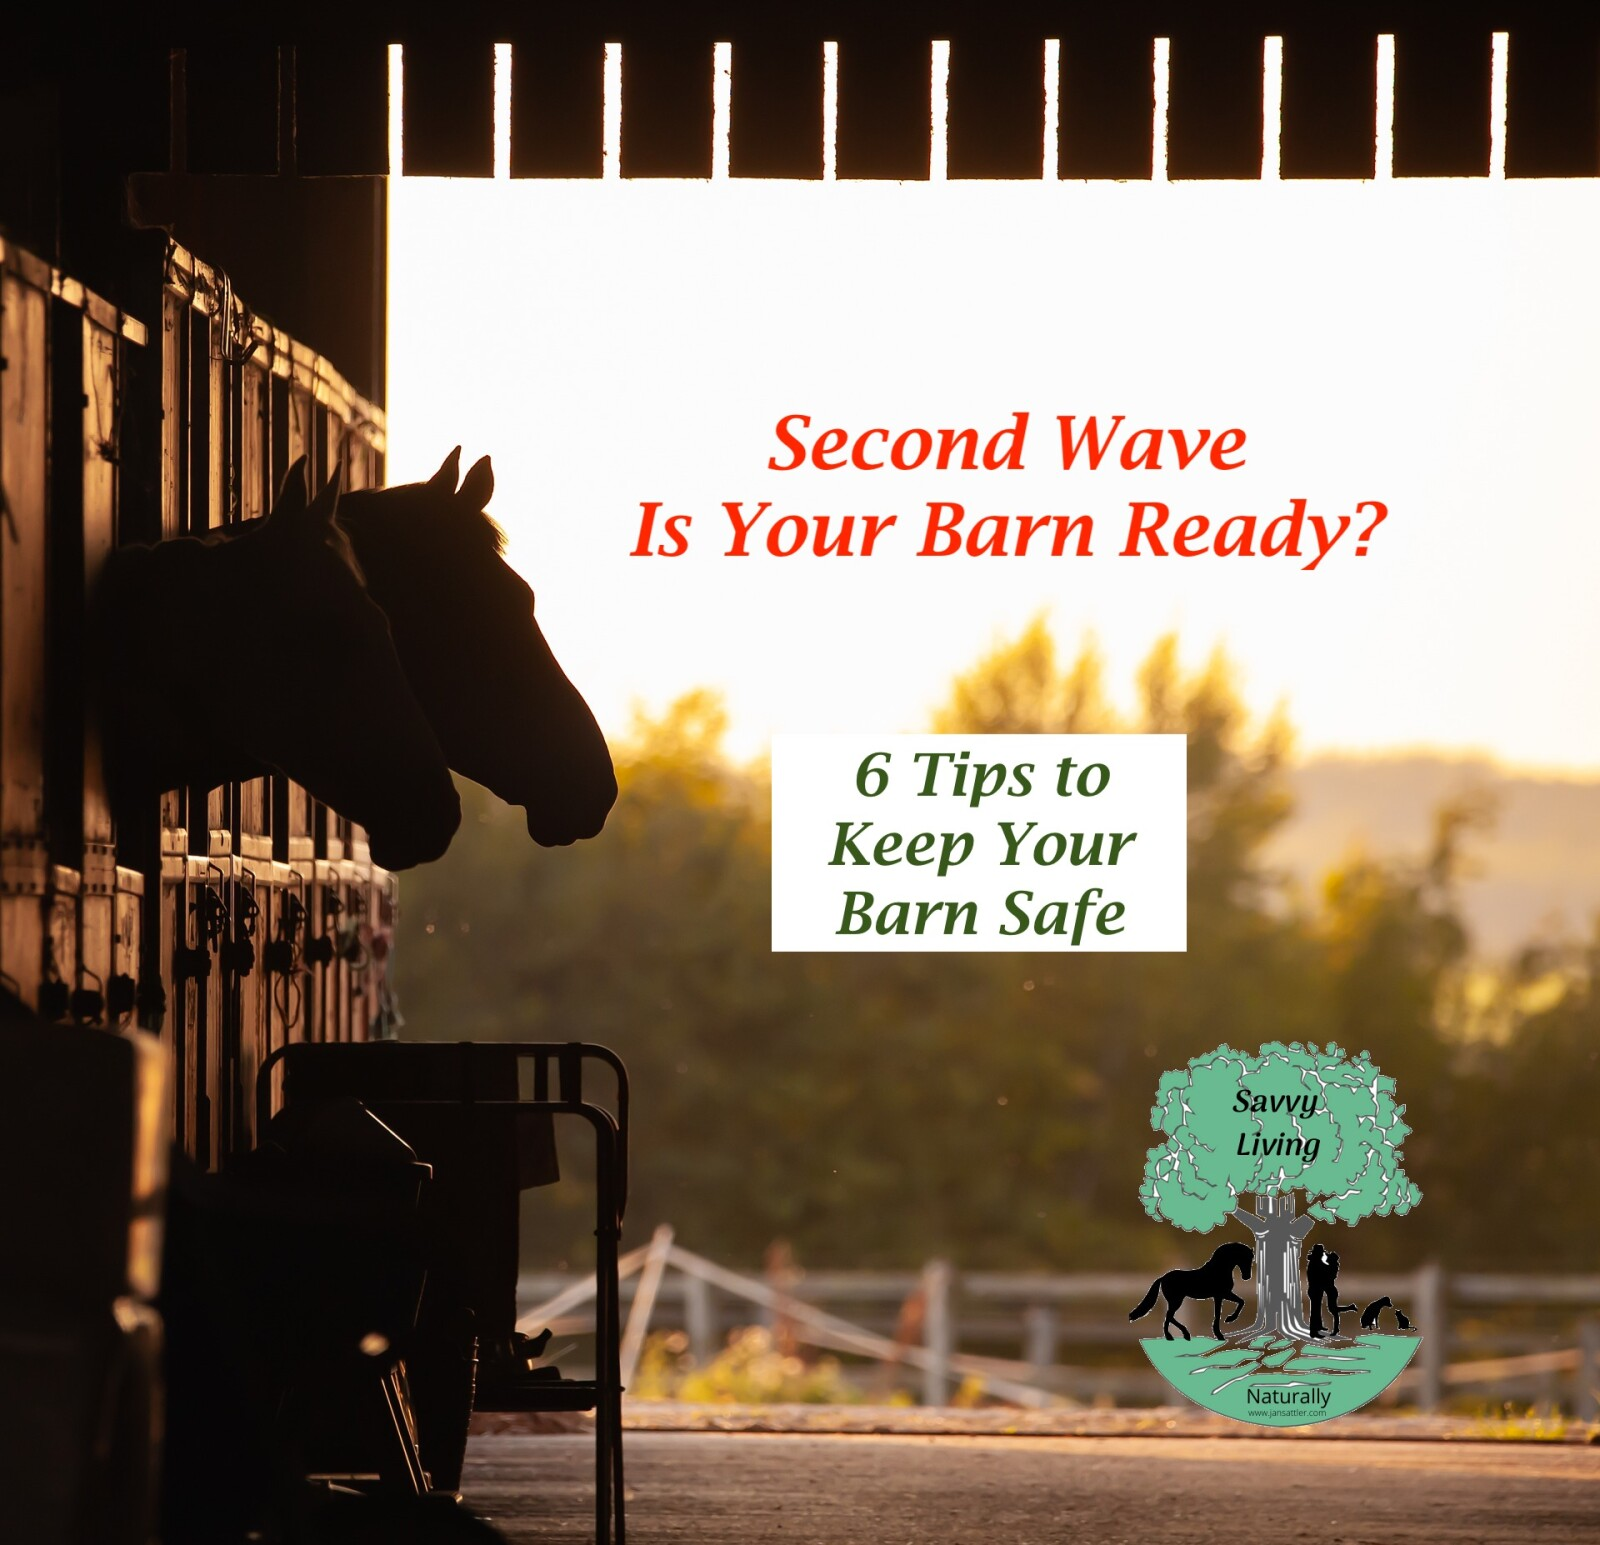 Is Your Barn Ready for the Second Wave?   6 Tips to Keep Your Barn Safe